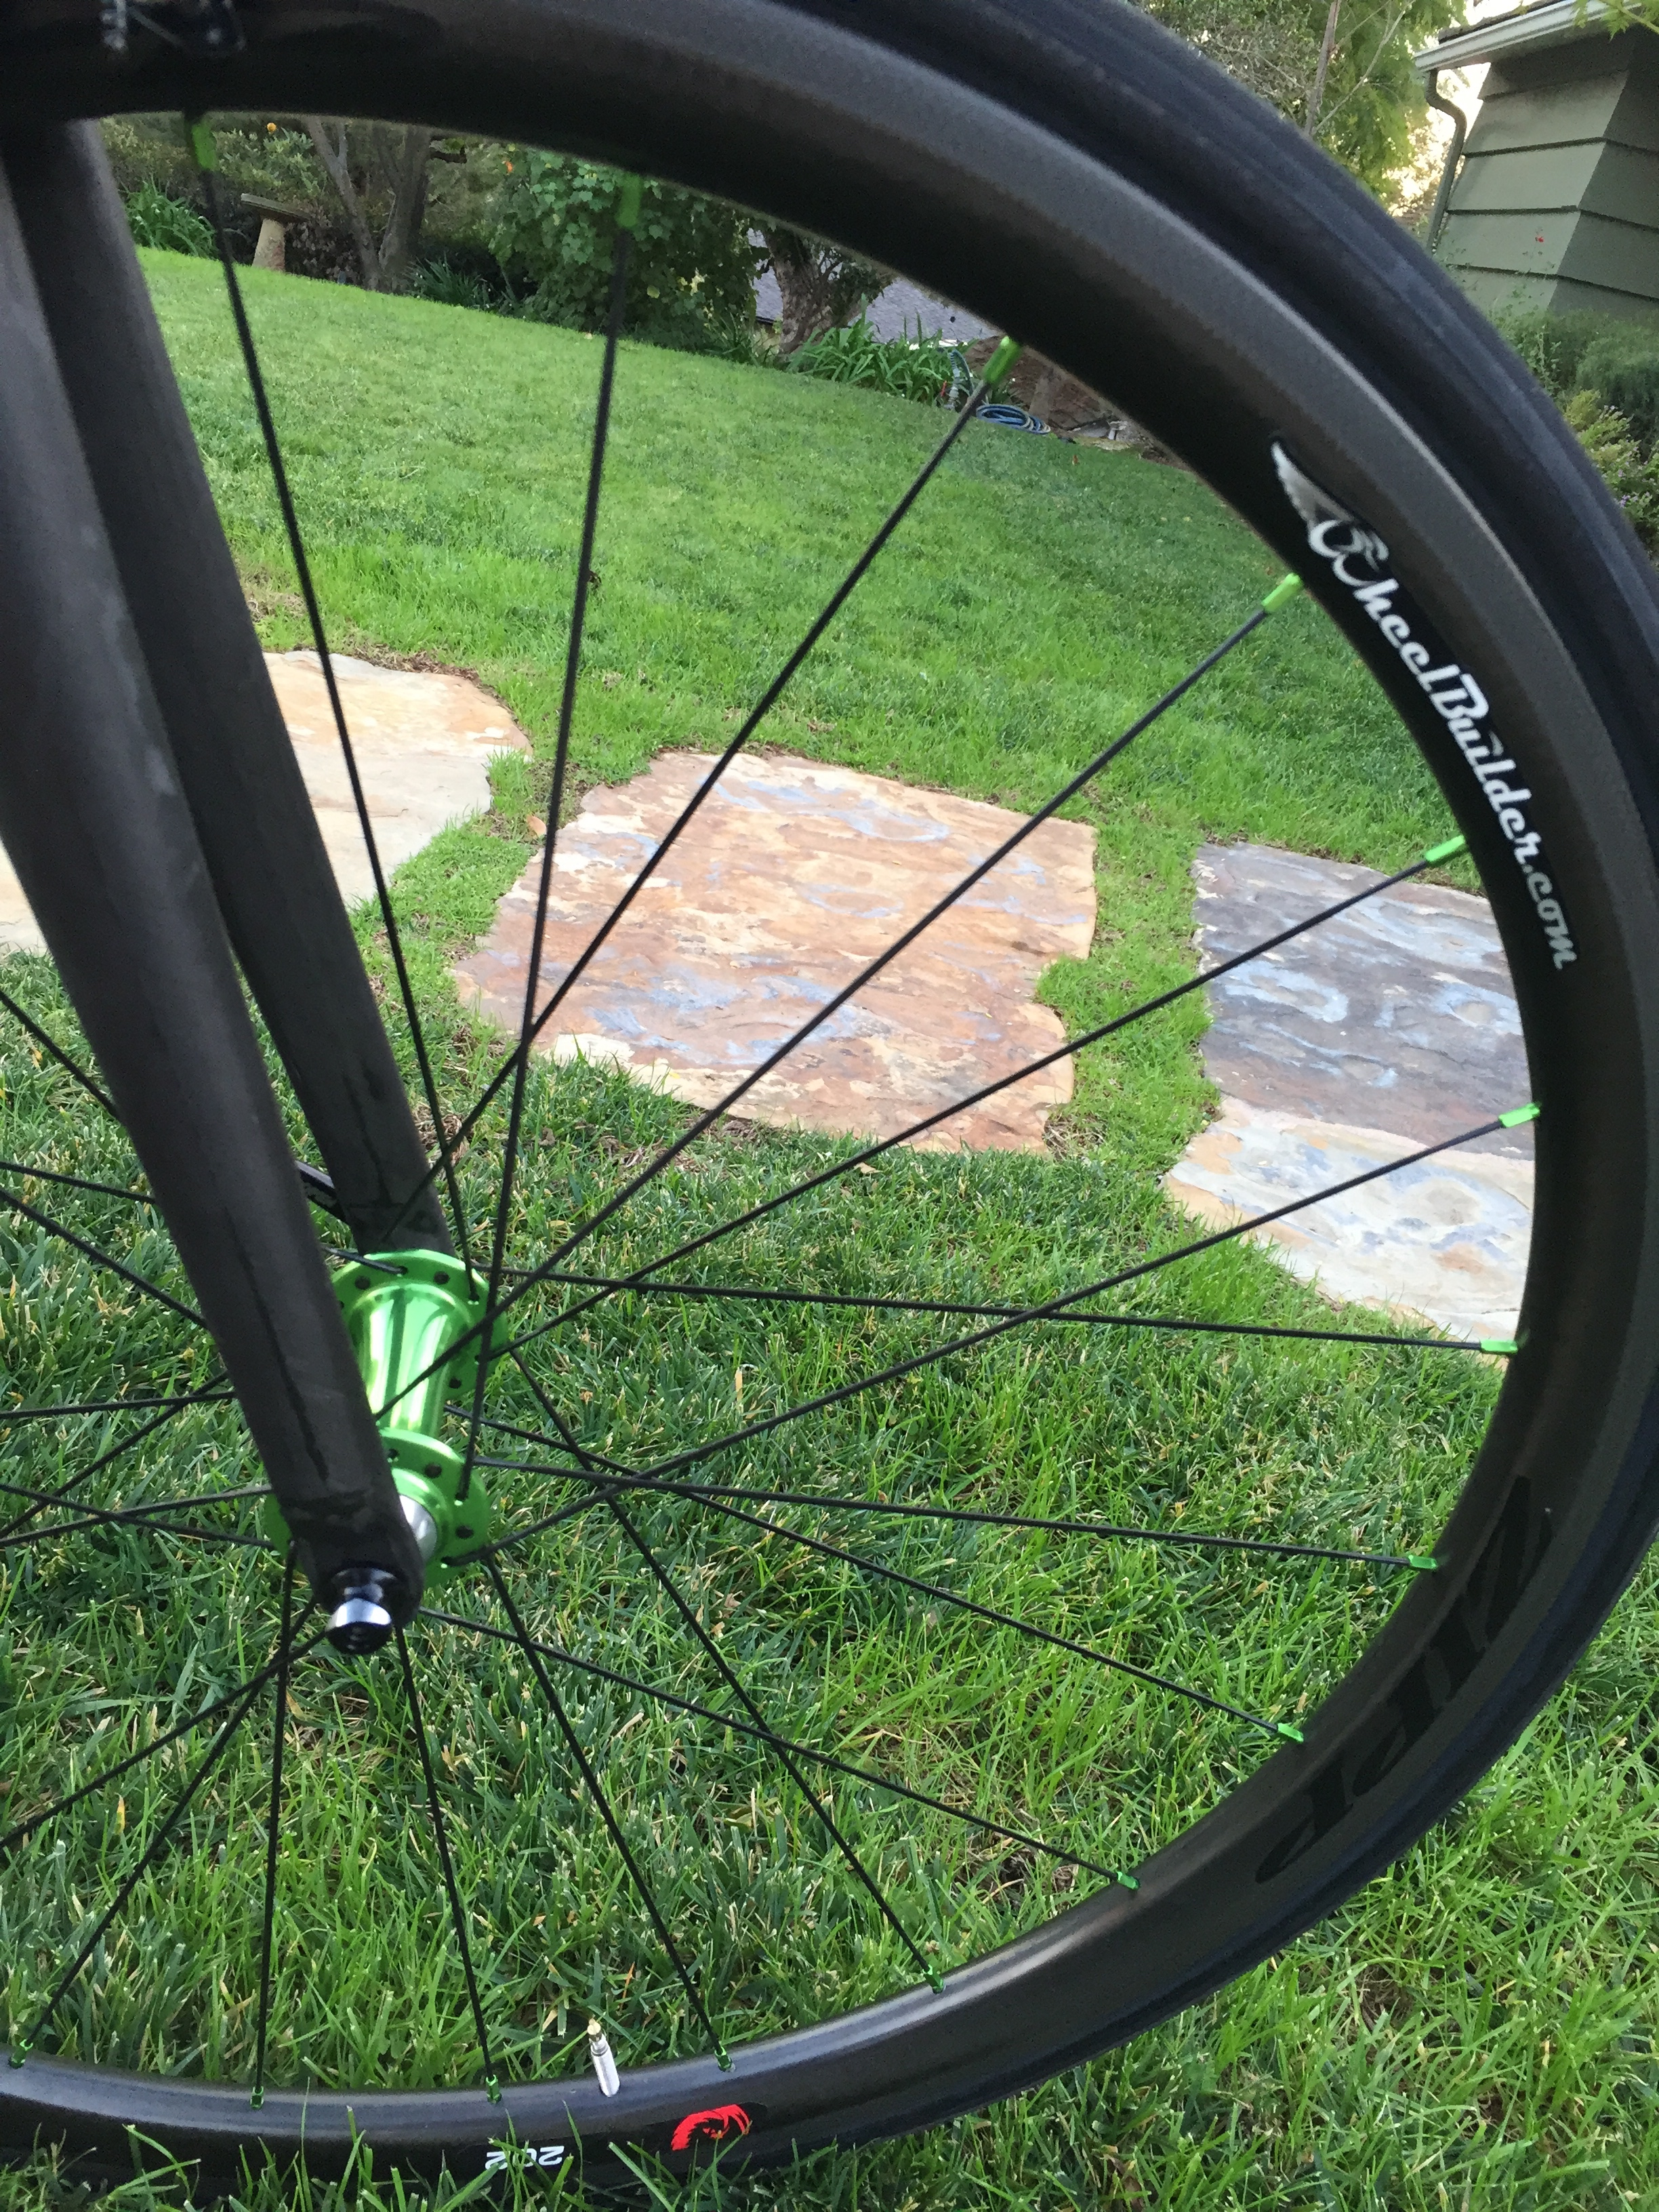 I love the Chris King sour apple.  The guys at  wheelbuilder.com  went above and beyond on this wheel build.  They had the spoke nipples custom anodized to match the hub.  :)  They are hypnotic when I look down at them on the road.